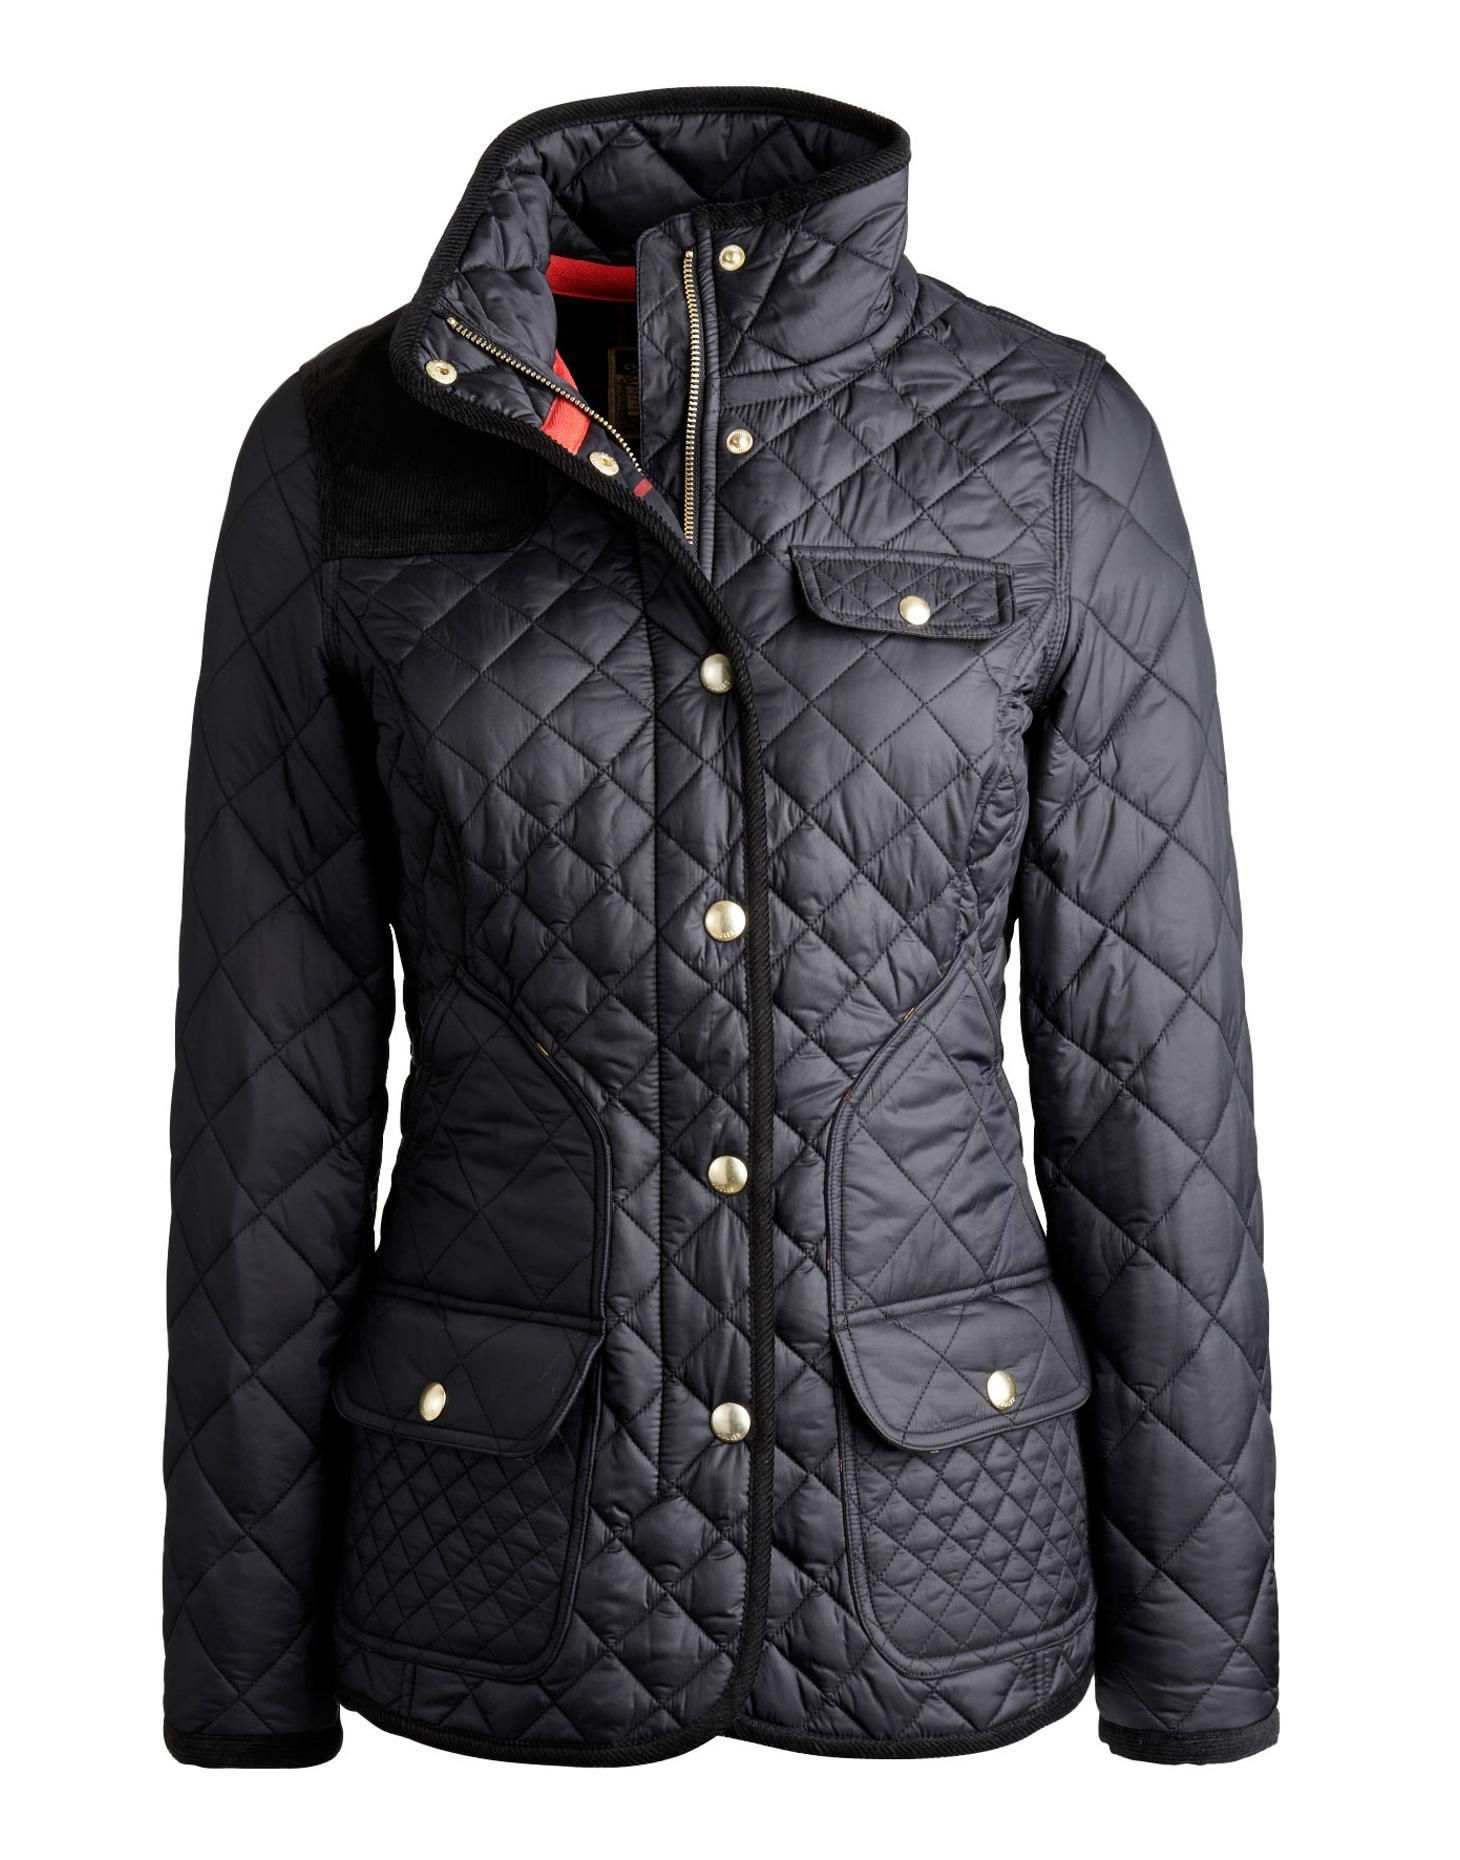 Calverly Womens Coat Clothing Pinterest Quilted Jacket And Black